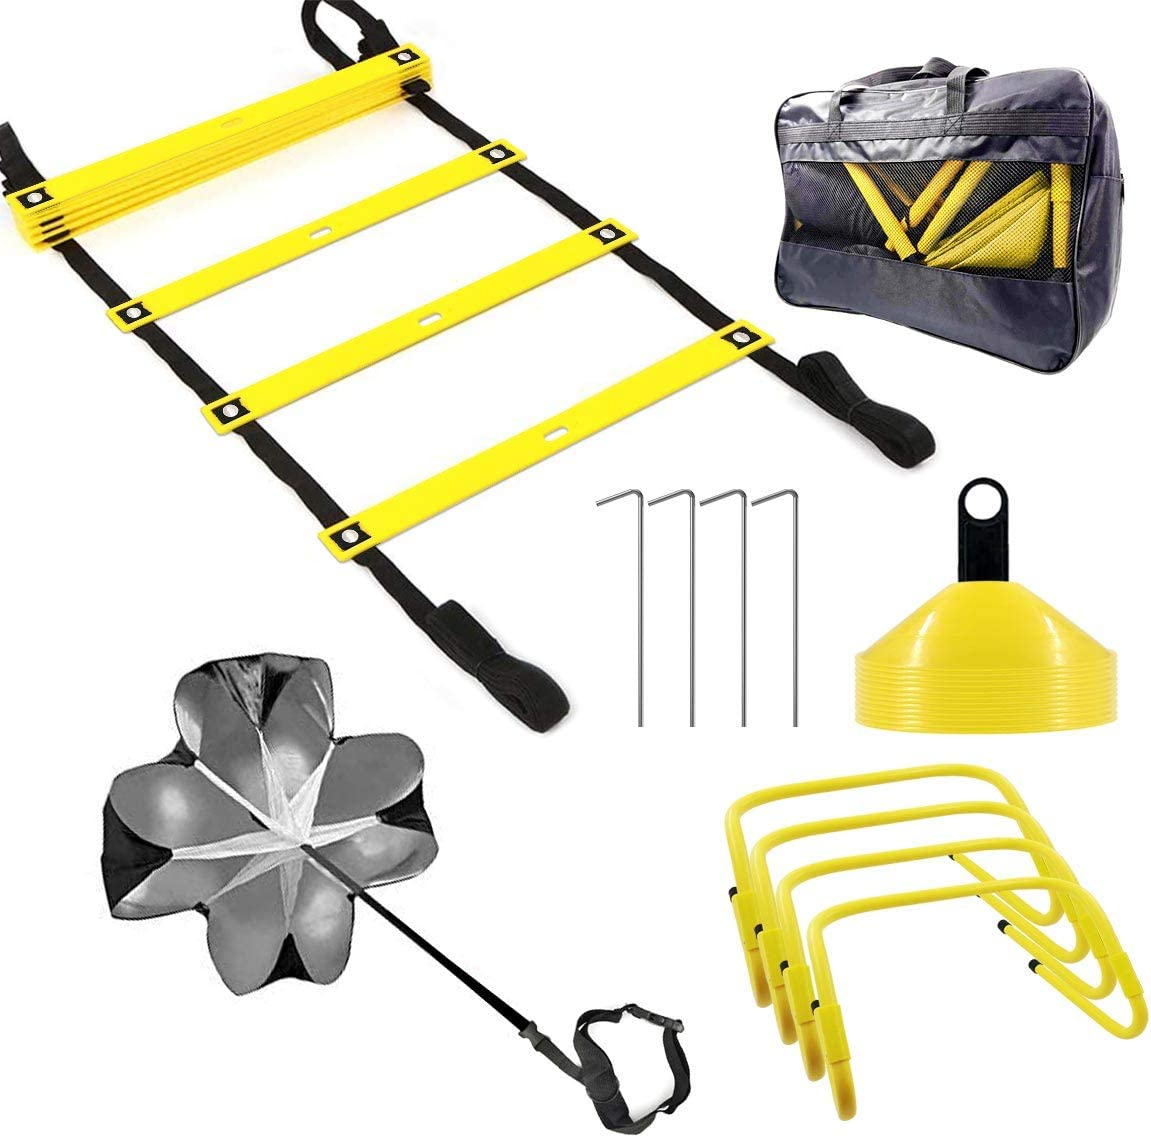 FYGAIN Speed Agility Training Set, Includes Resistance Parachute, Agility Ladder, 4 Steel Stakes, 4 Adjustable Hurdles, 12 Disc Cones with Holder, Speed Training Equipment for Soccer, Football : Sports & Outdoors